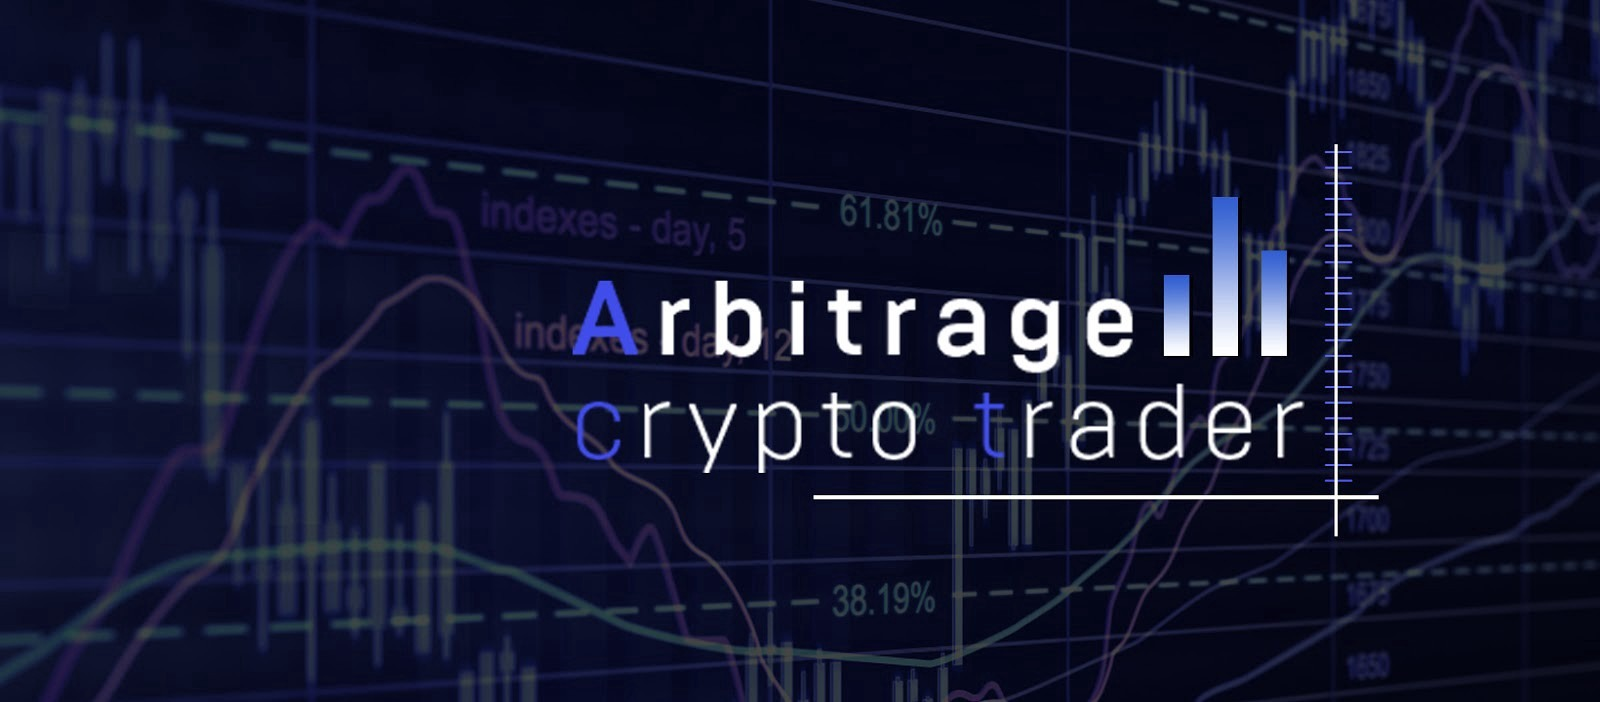 arbitrage trading in cryptocurrency